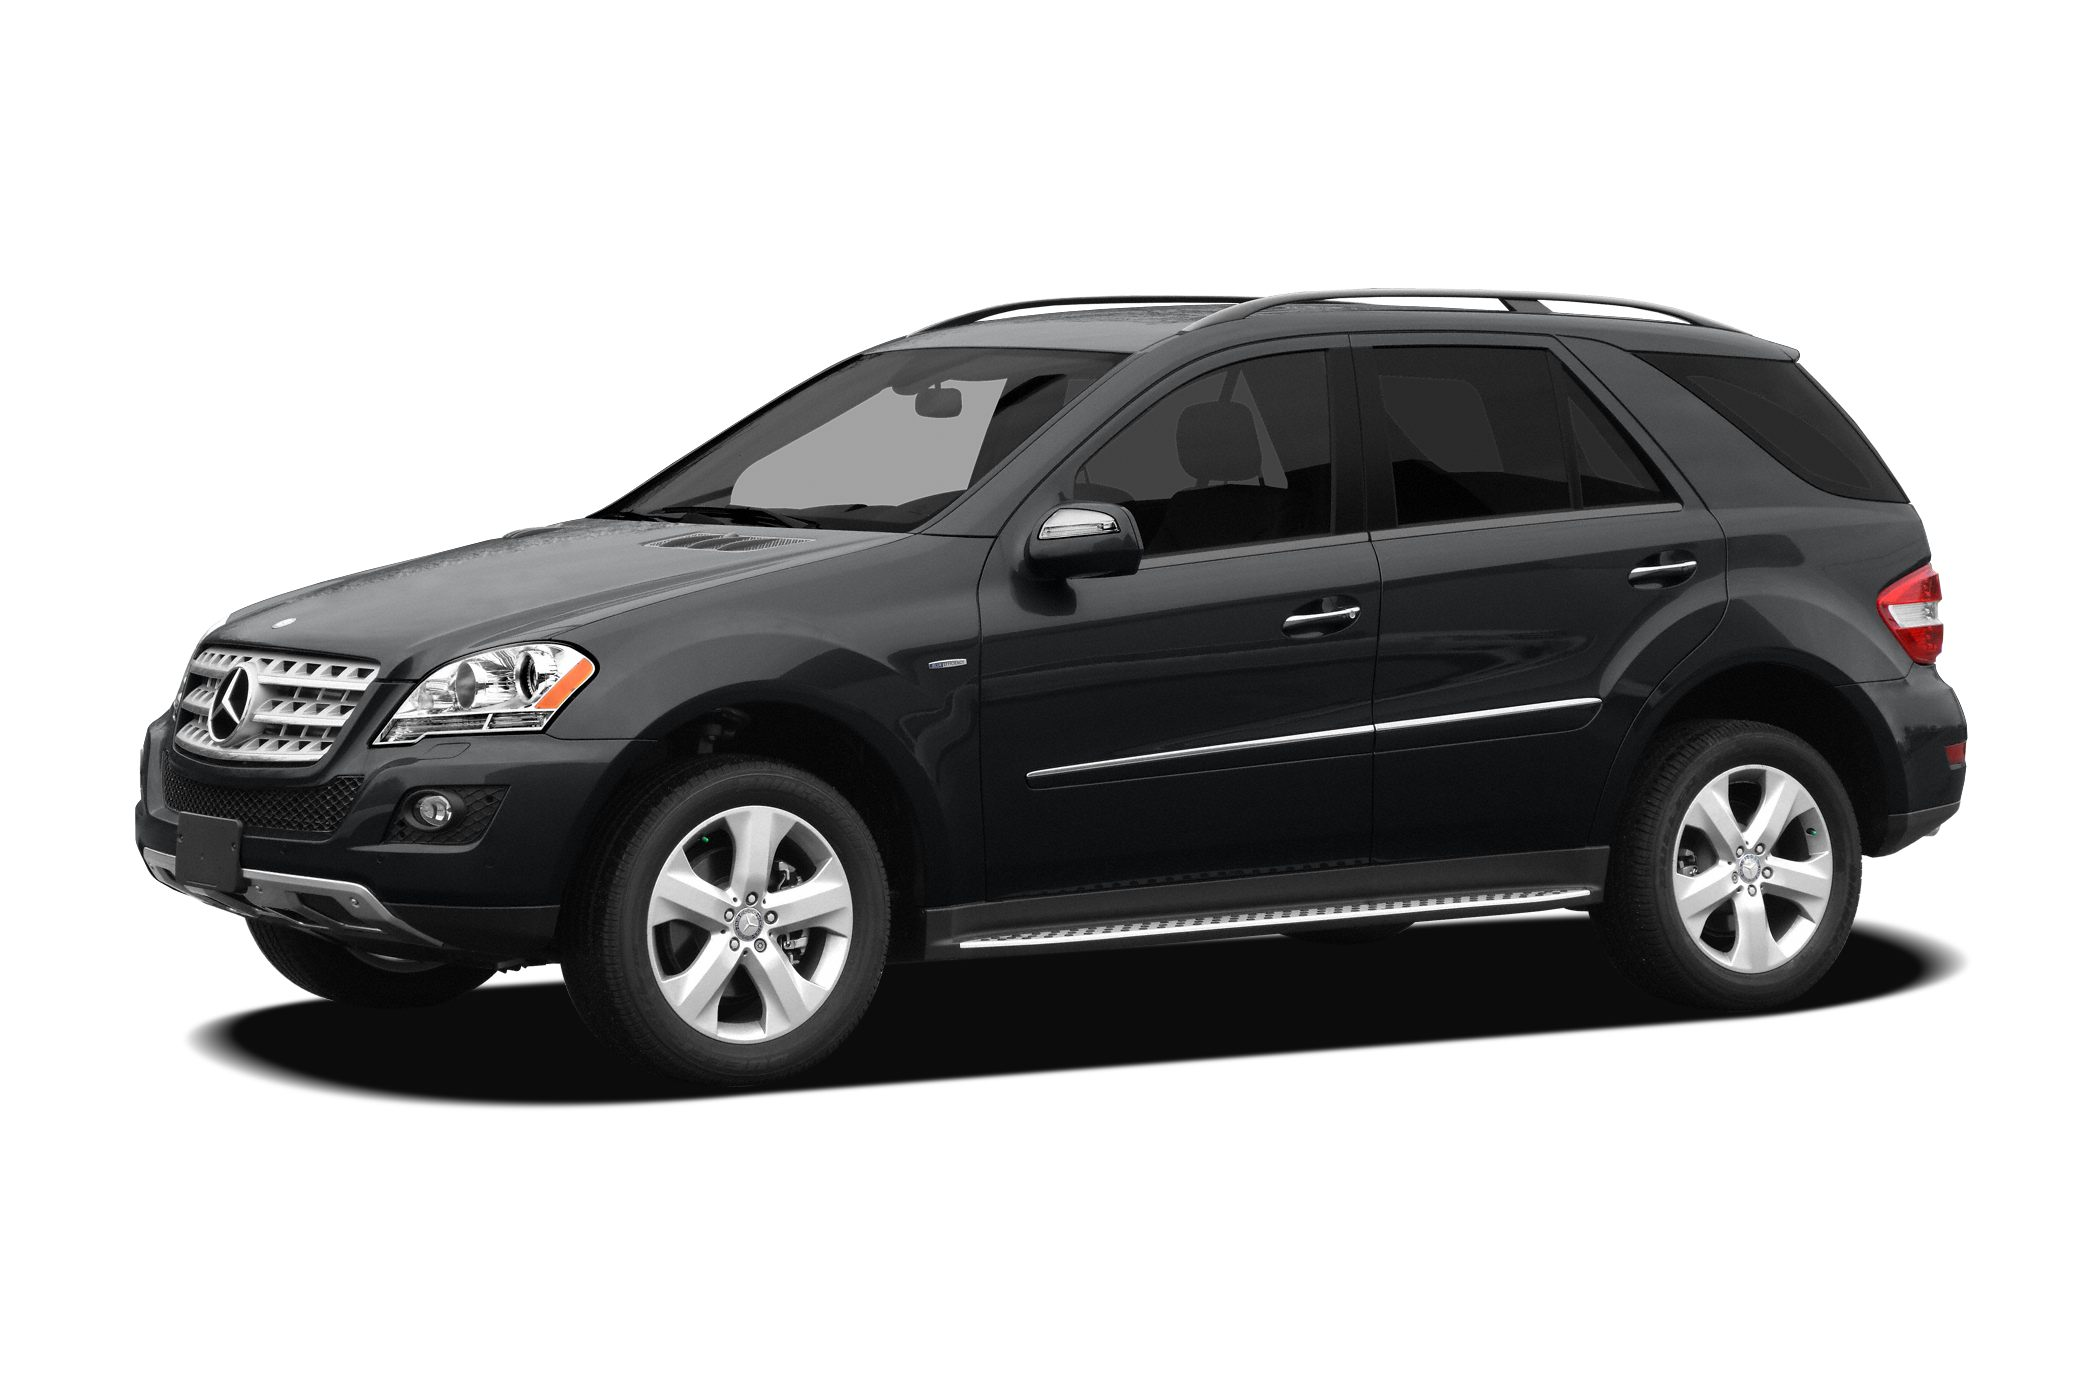 CAC00MBS271A0101 Cool Review About 2012 Mercedes Ml350 Bluetec